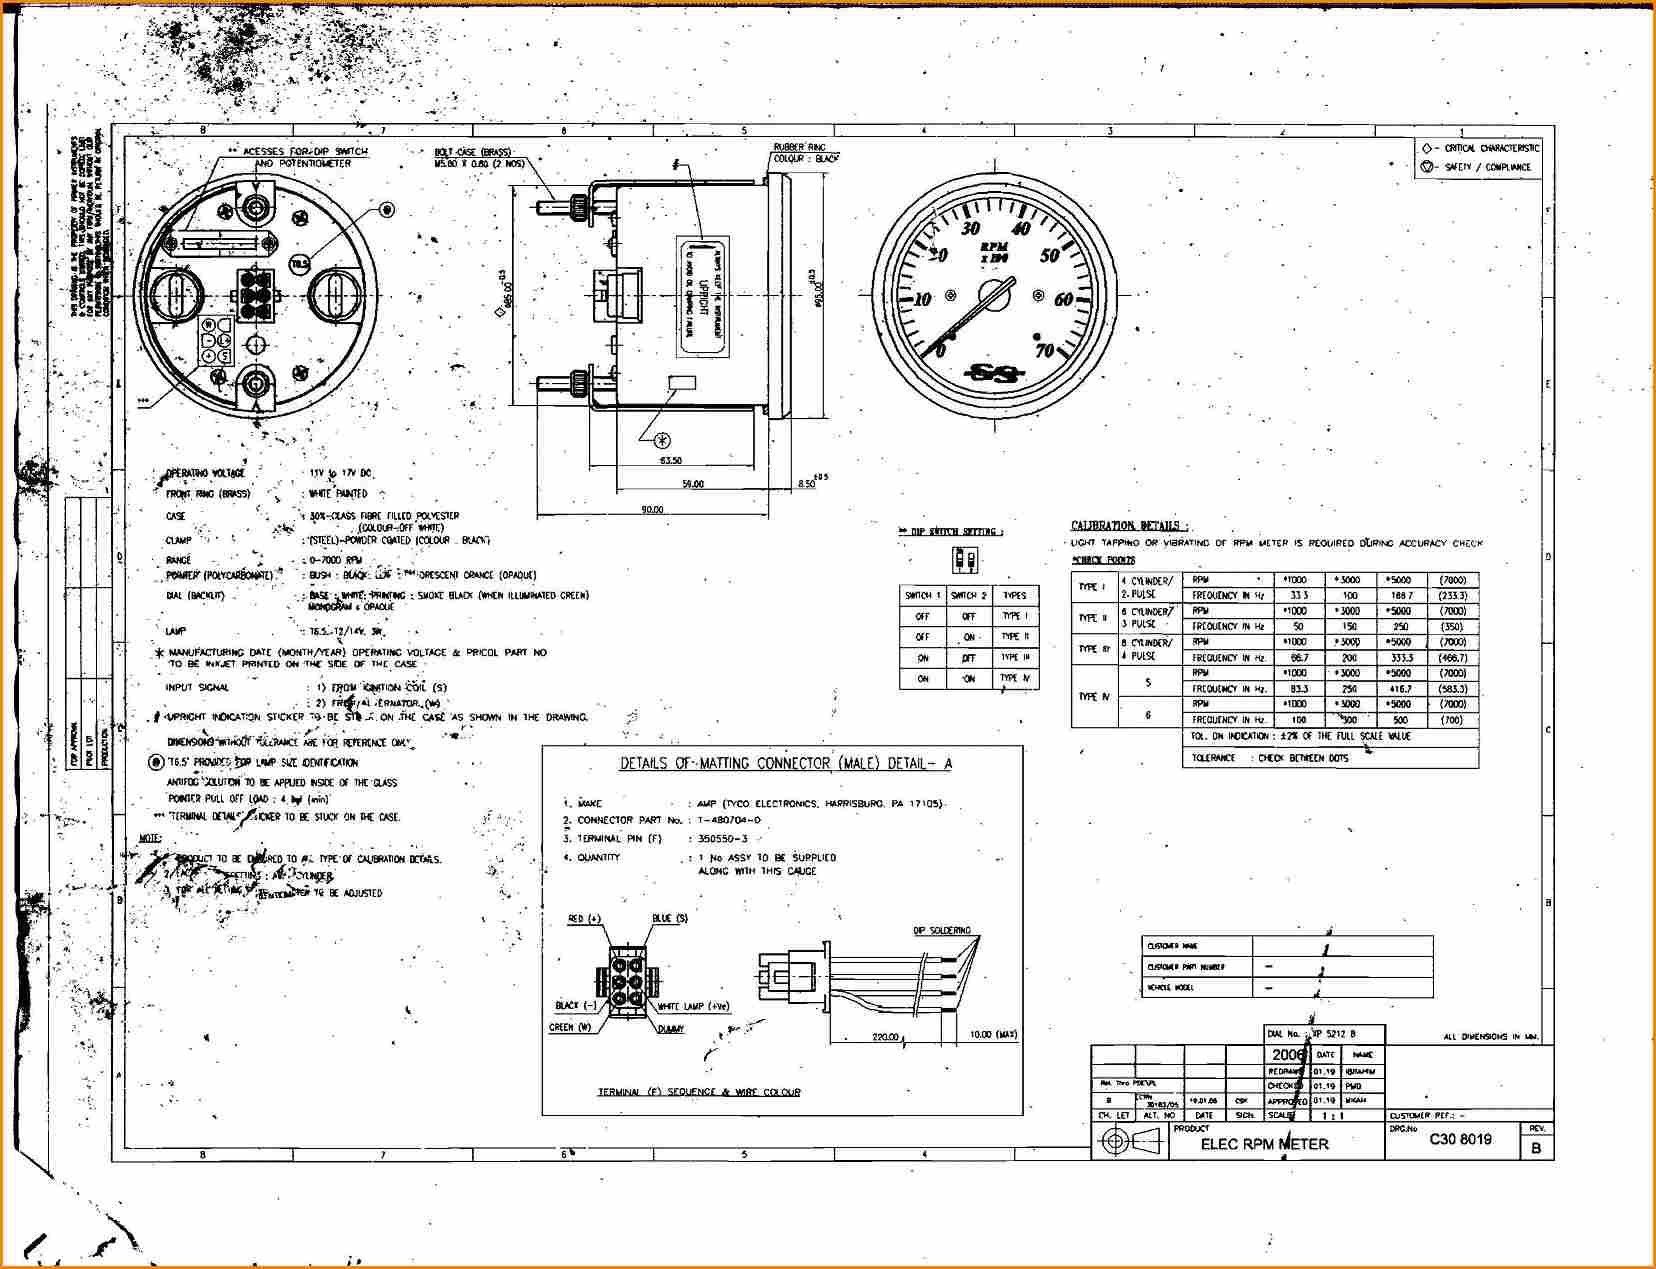 hight resolution of johnson tachometer wiring diagram wiring diagrams konsult2000 johnson wiring diagram wiring diagram toolbox johnson outboard wiring